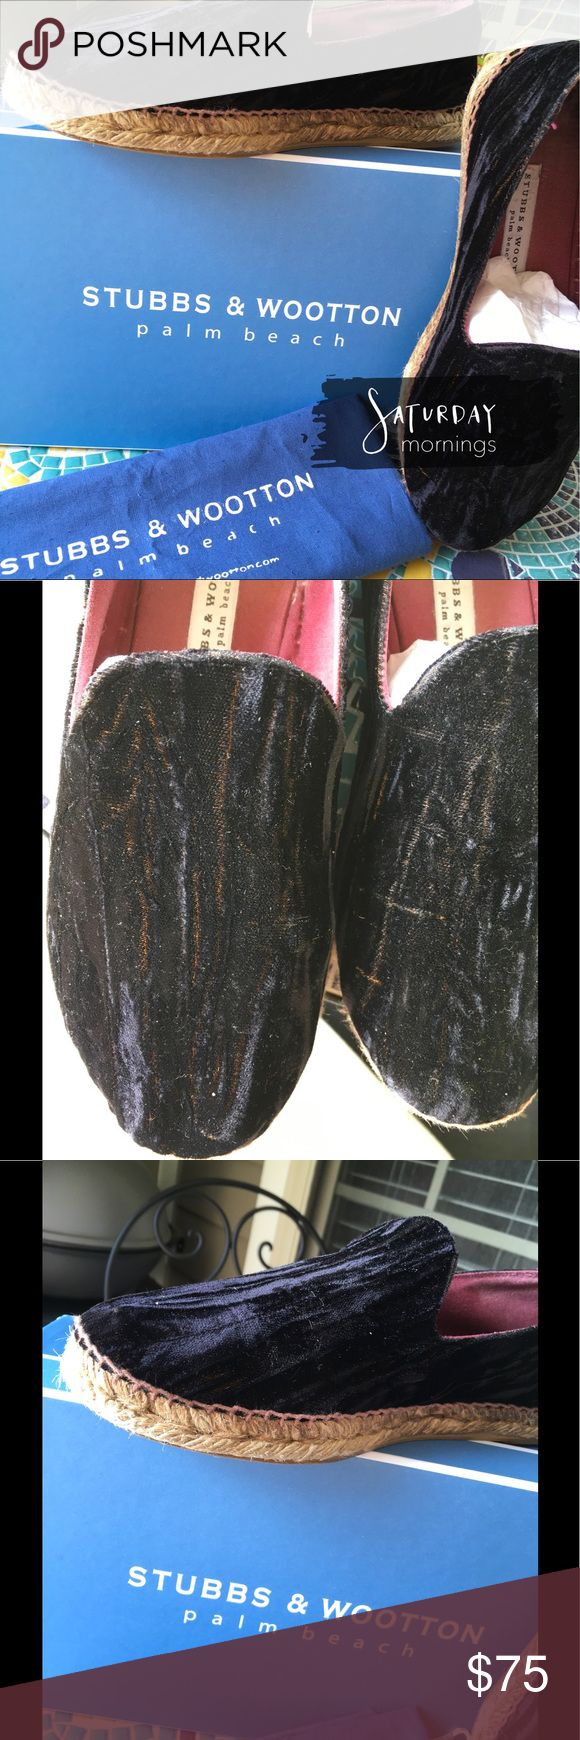 Stubbs & Wooten Beautiful designer espadrilles!!  Oh my goodness they are super comfortable!!! In my opinion they run alittle small.  GUC. J. Crew Shoes Espadrilles